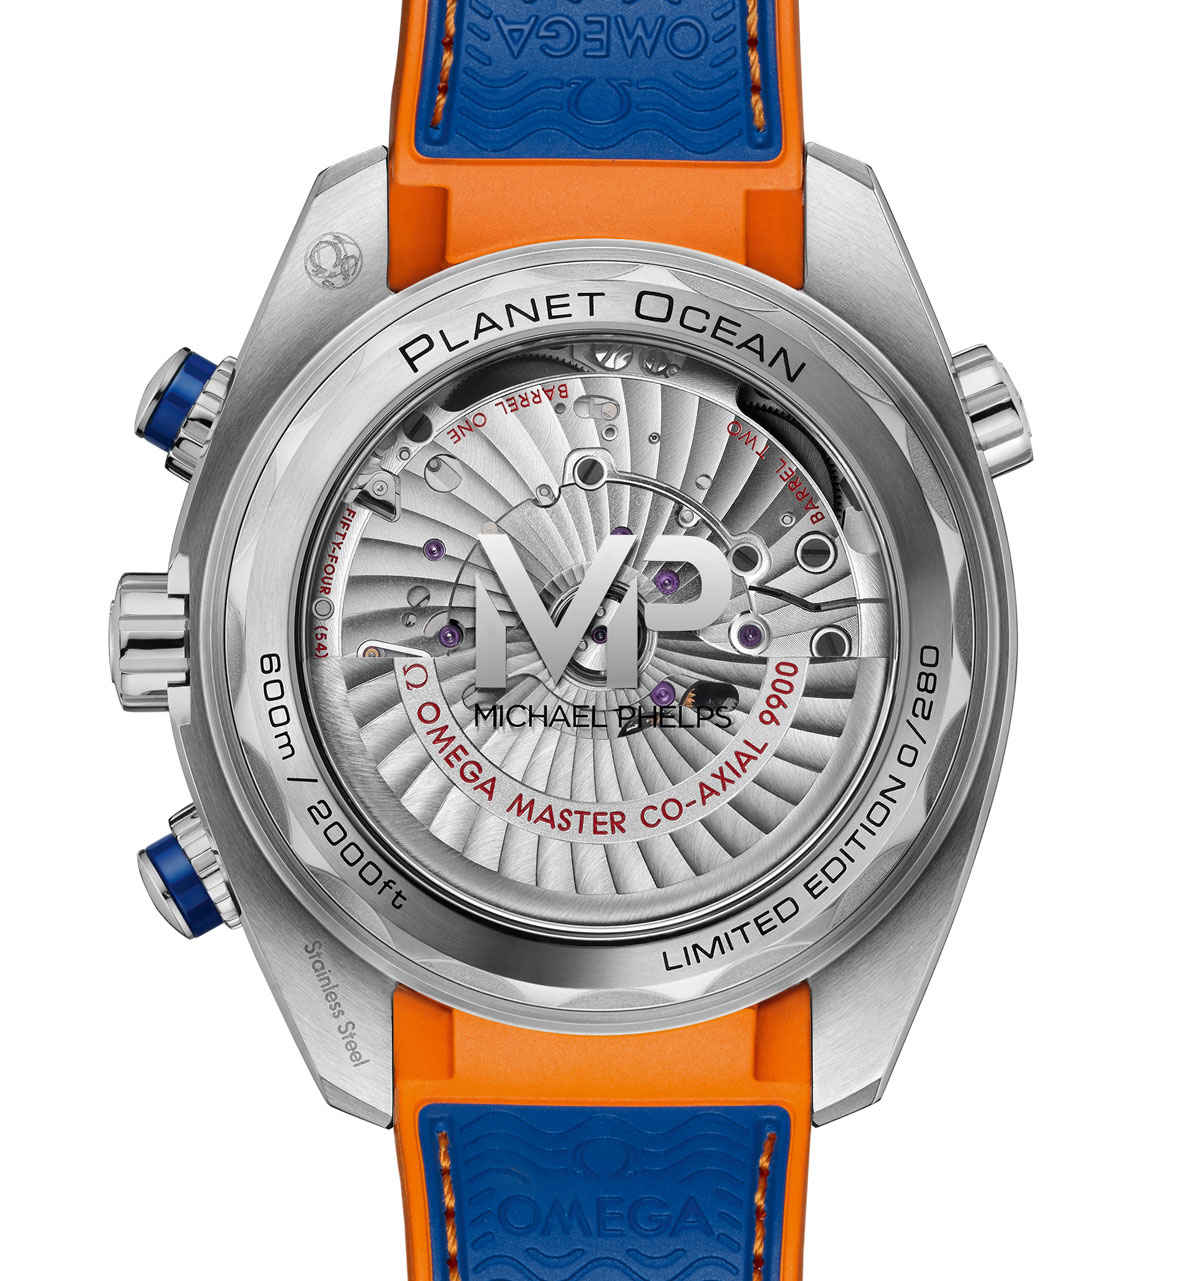 Best omega michael phelps replica watches for sale luxury omega replica watches shop for Omega replica watch